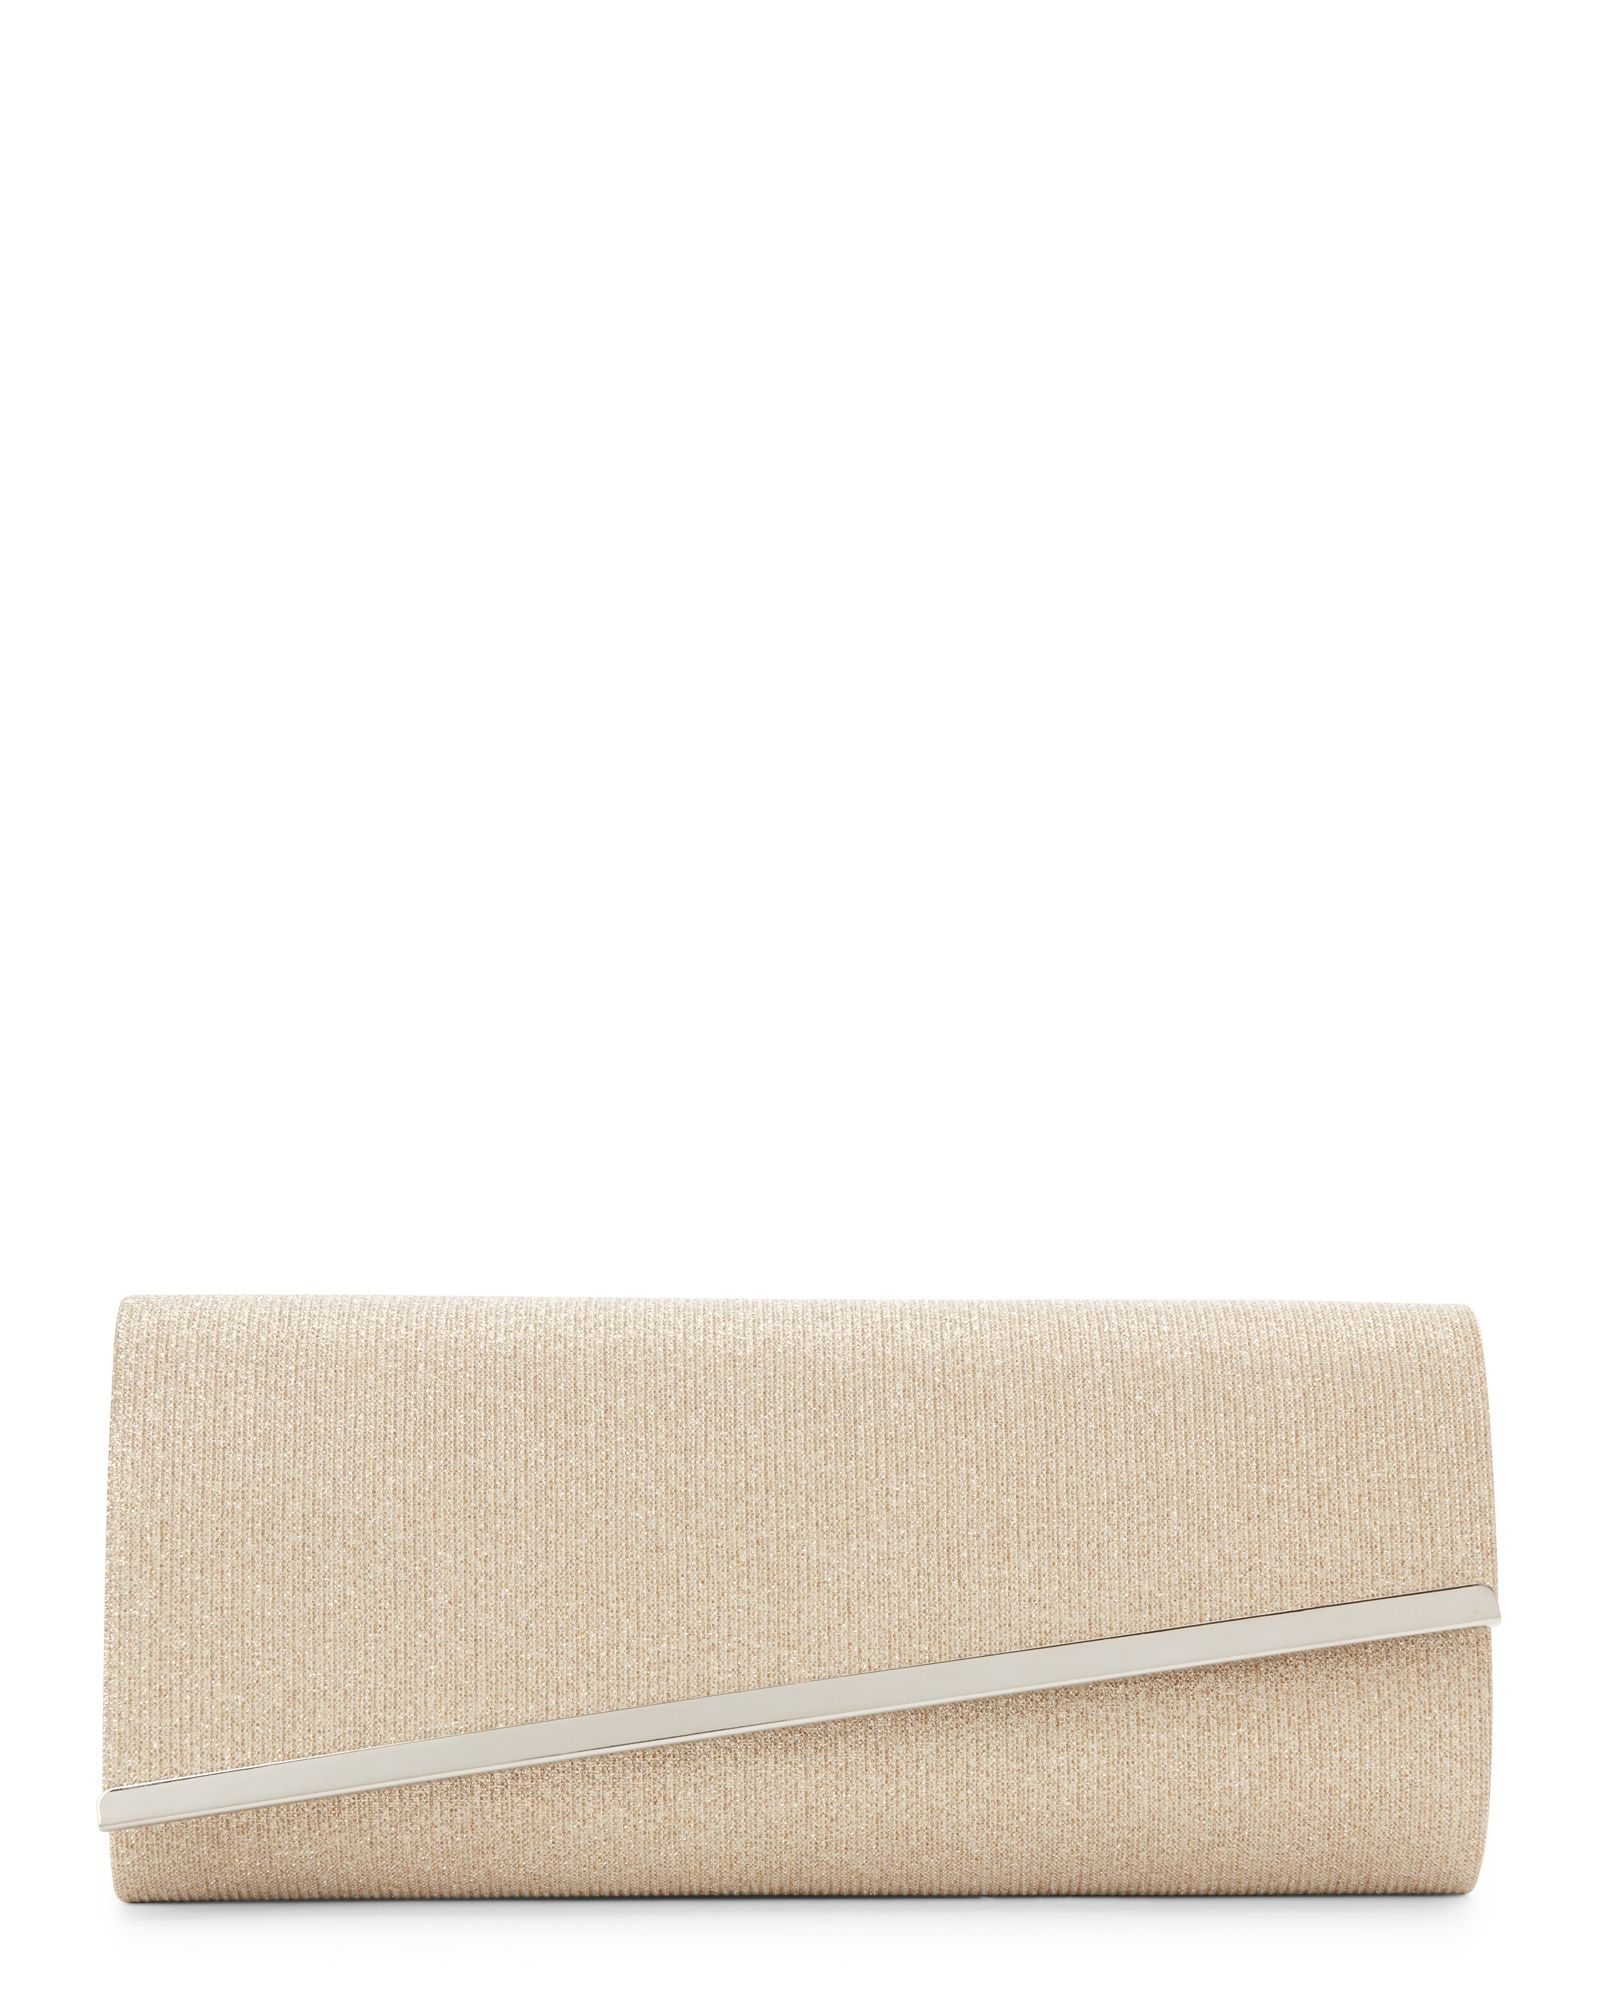 Sasha Gold Asymmetrical Flap Glitter Clutch